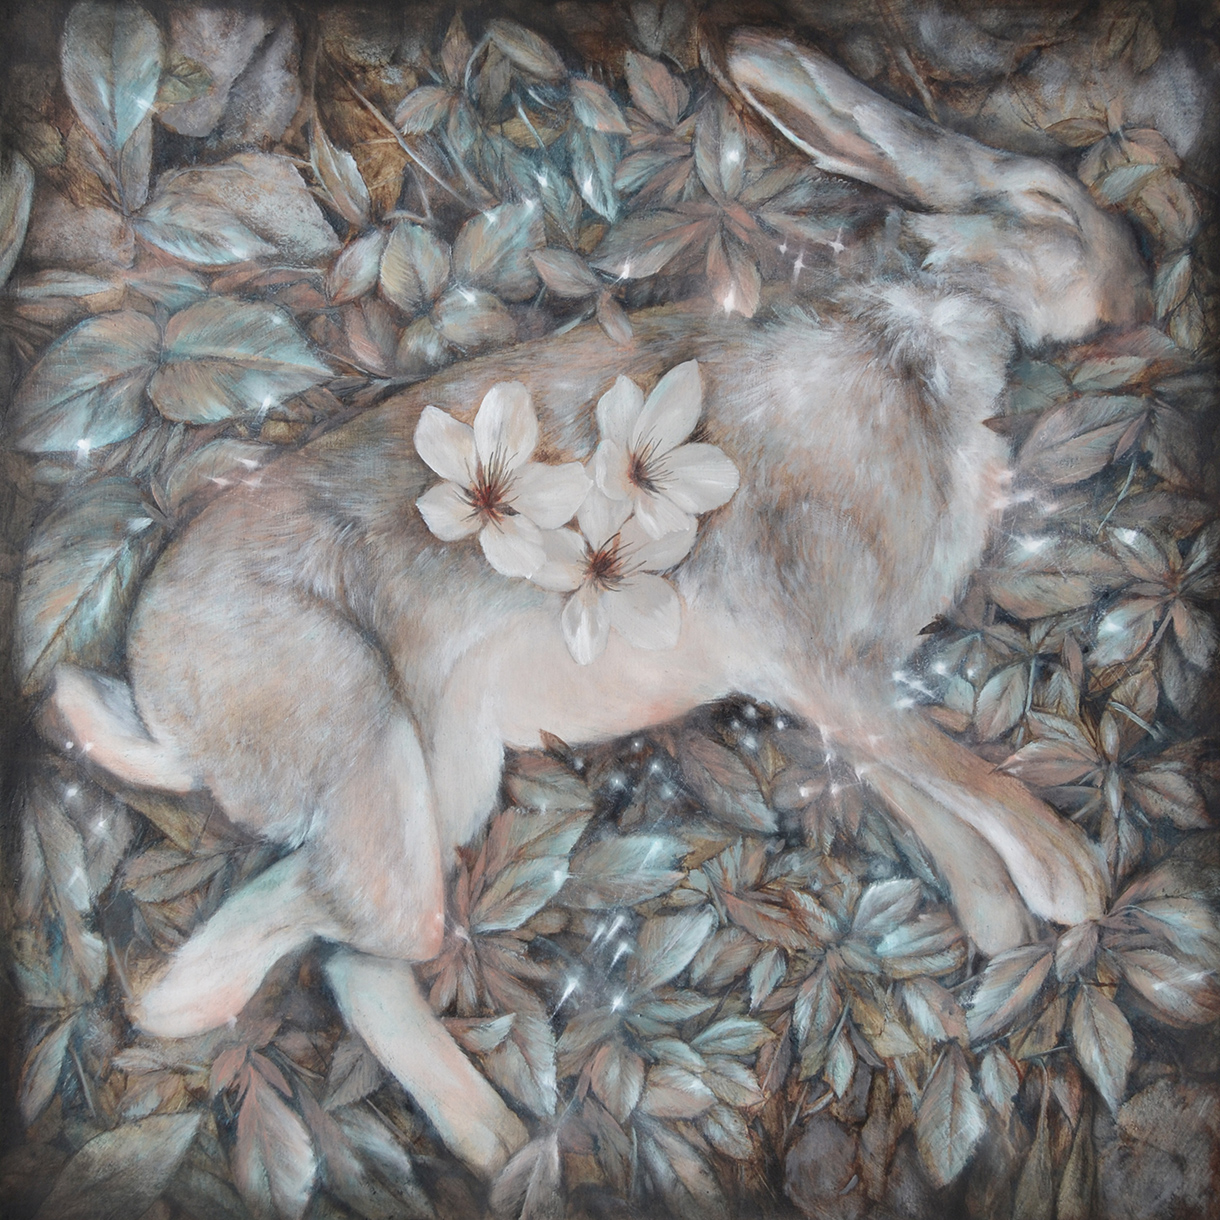 Nunzio Paci - In my garden there is a hare who pretends to sleep